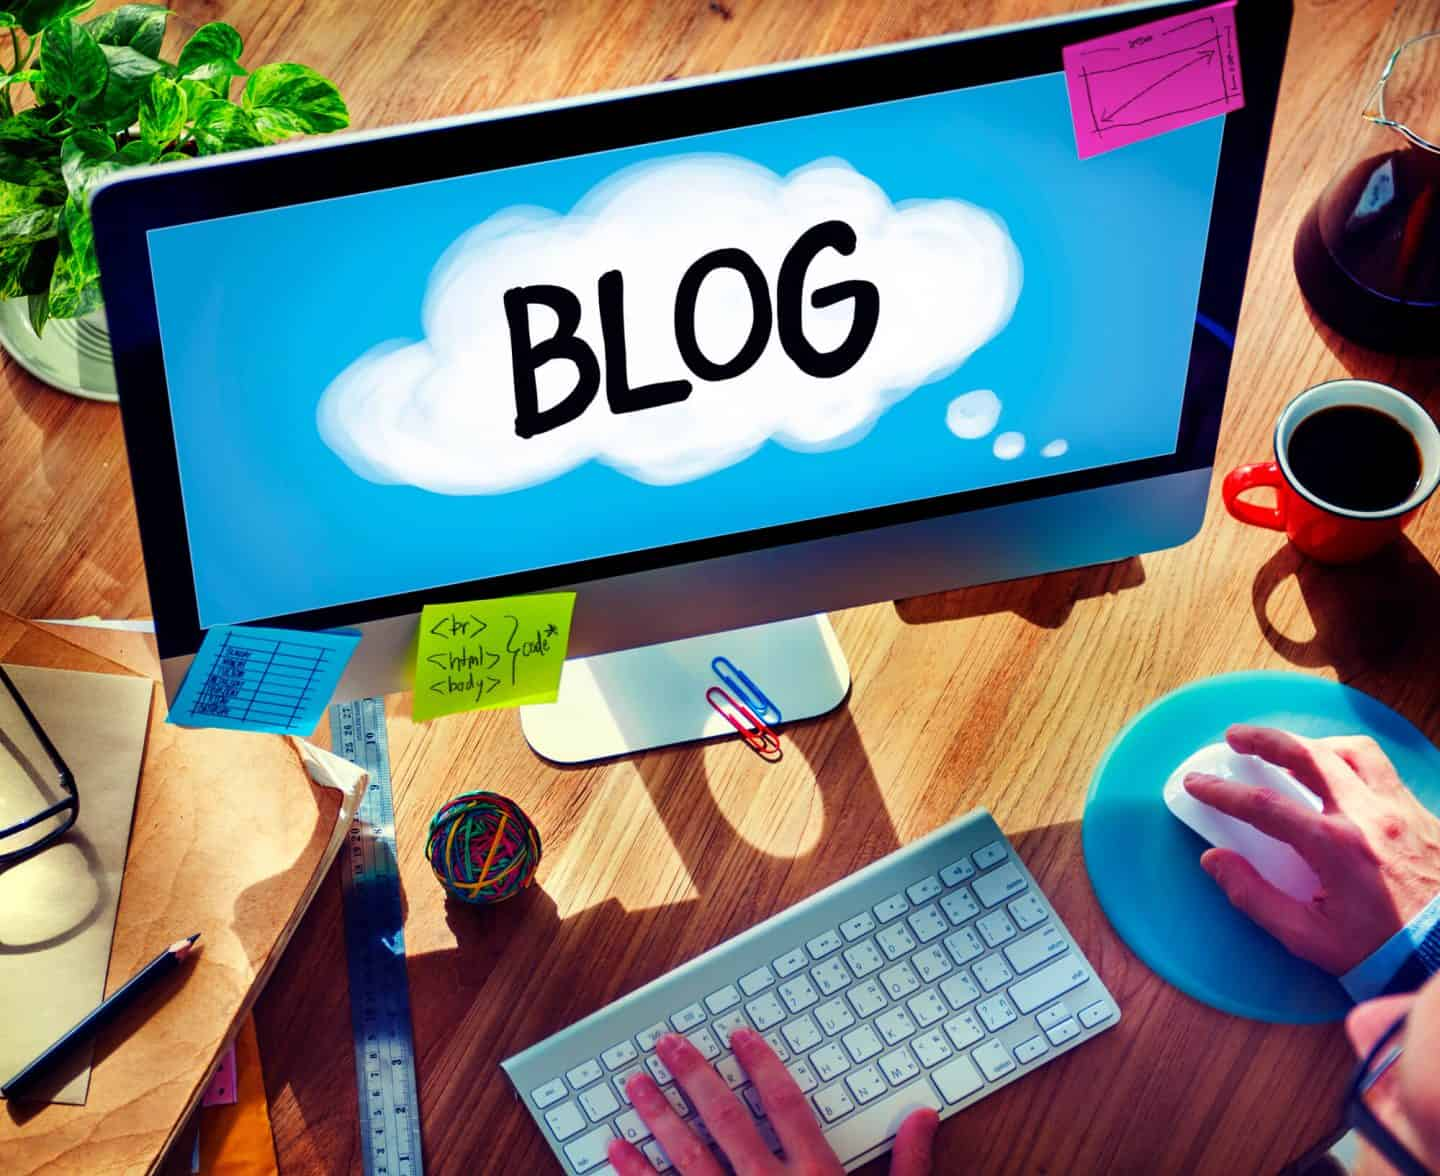 The Best Blogging Topics You Might Not Have Thought About